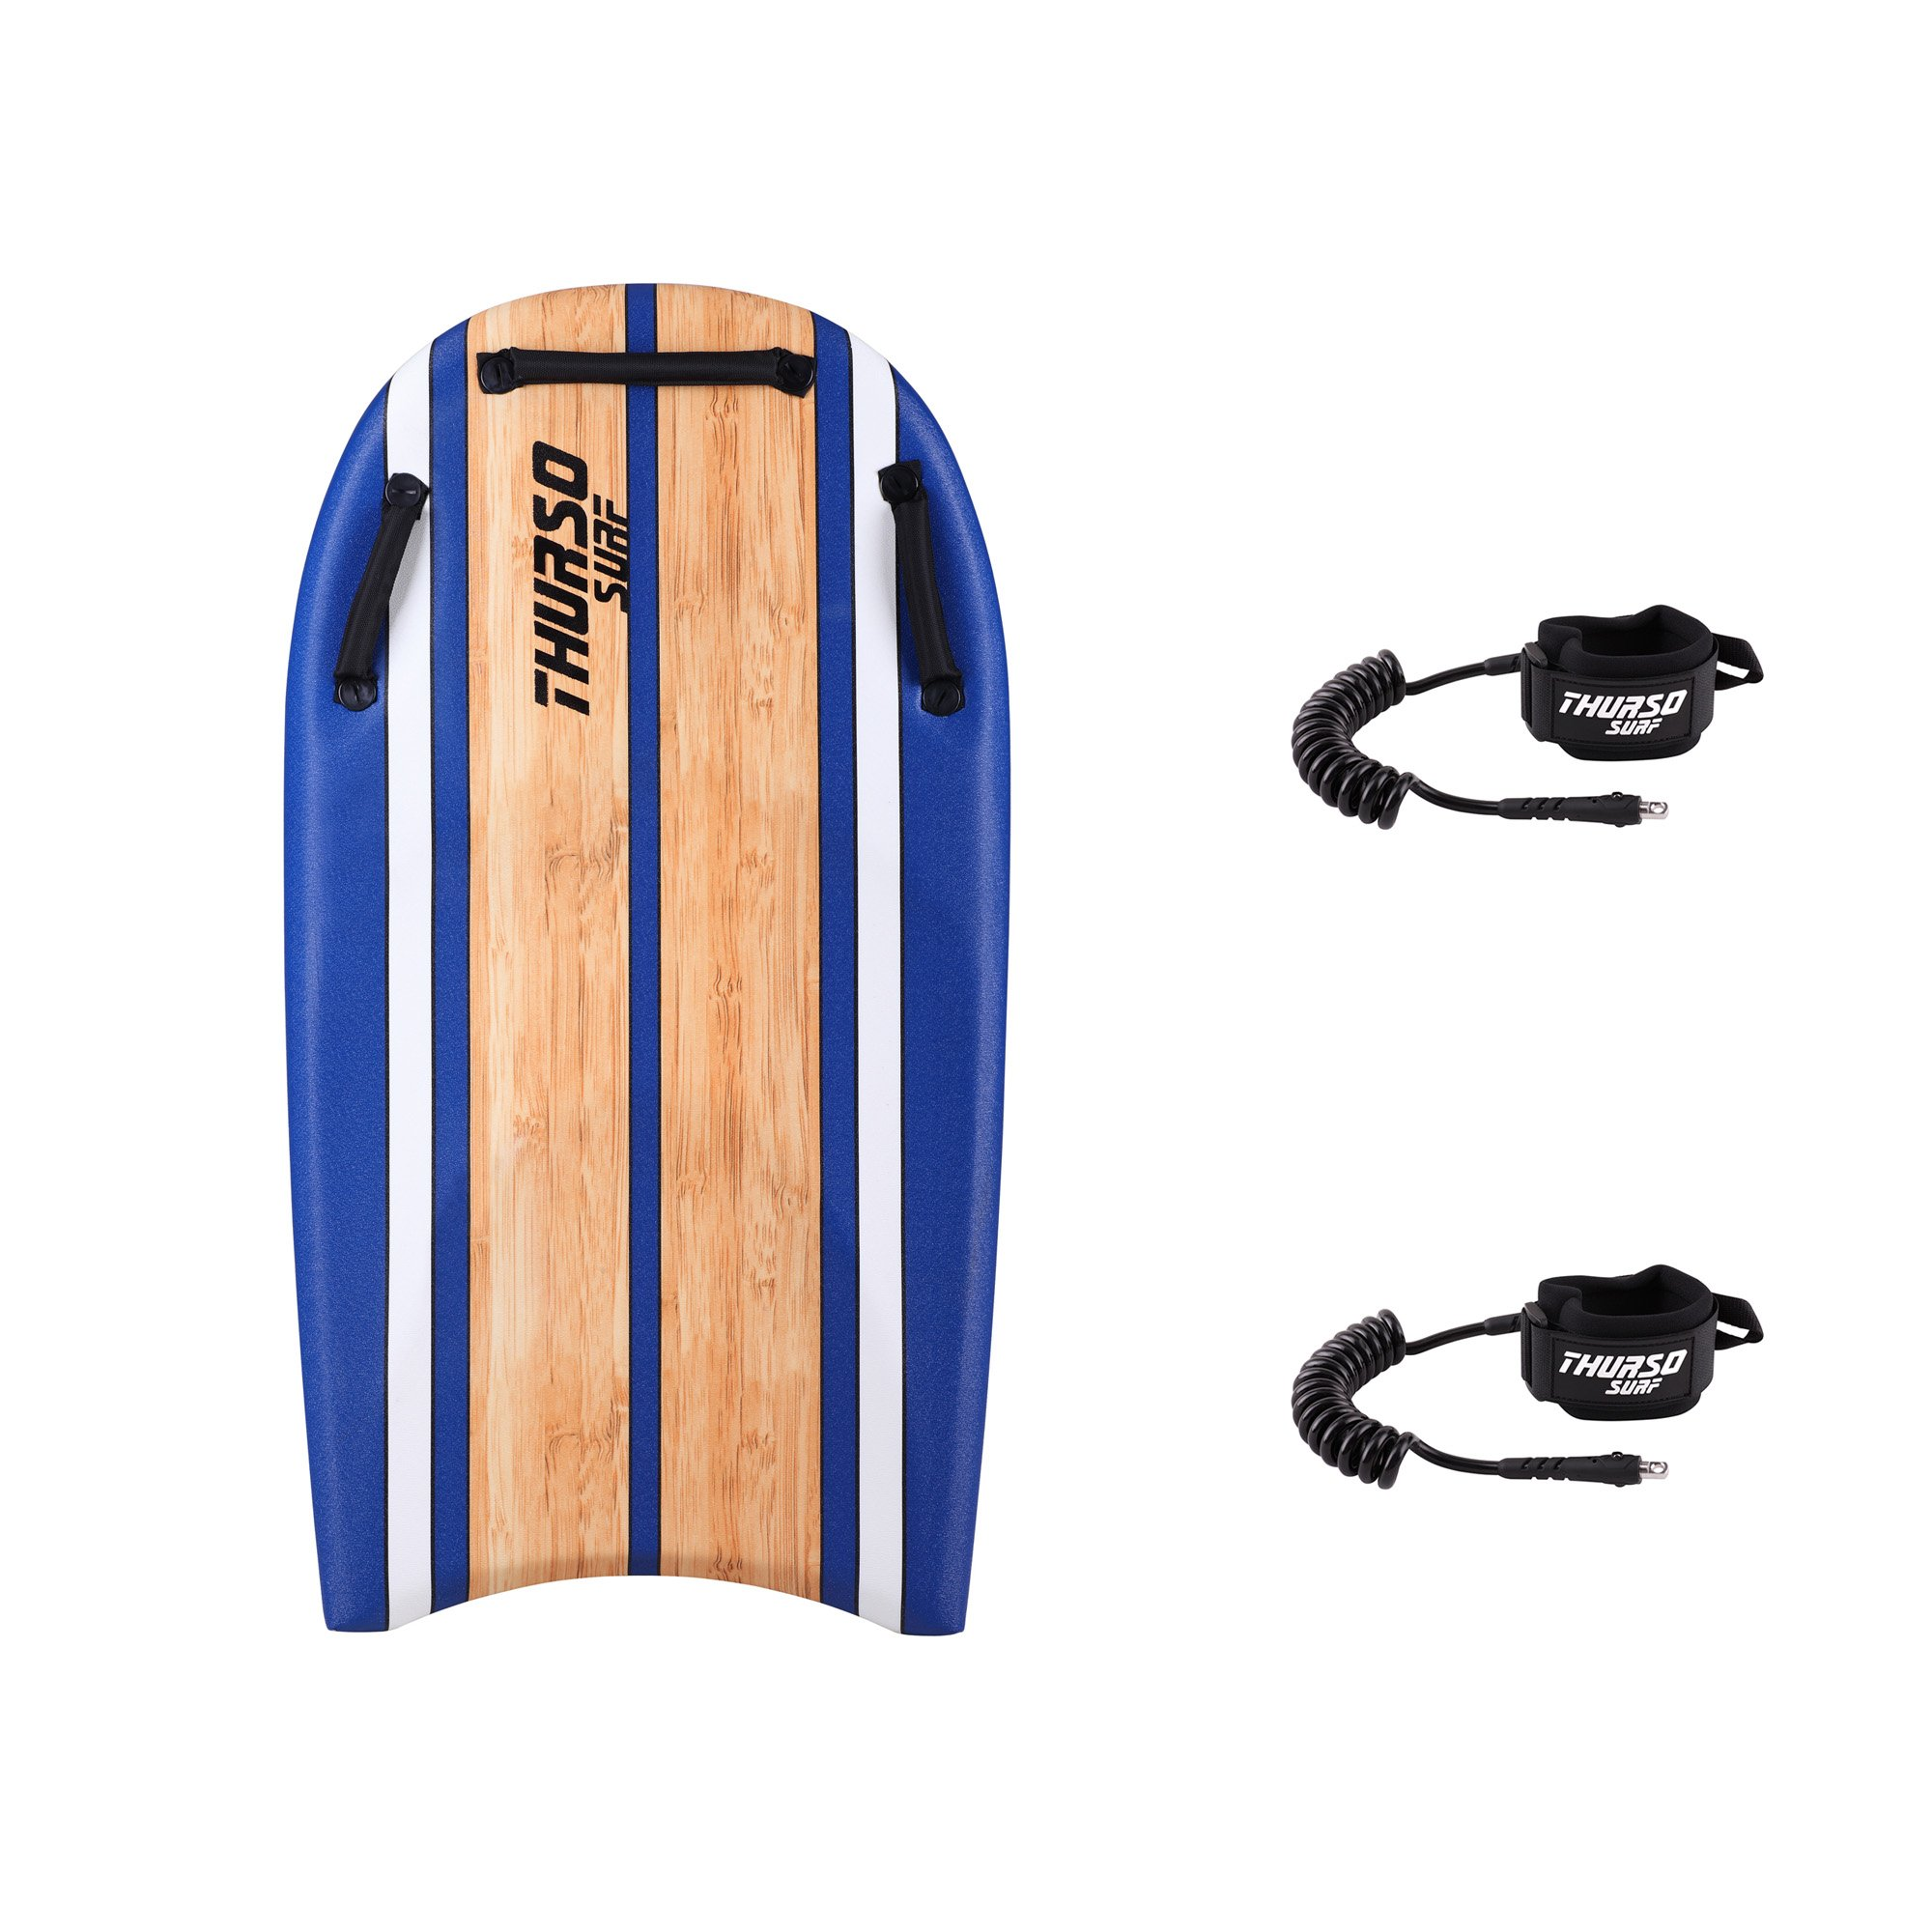 THURSO SURF DuoSlider 42'' Bodyboard With Handles Two Person EPS Core IXPE Deck HDPE Slick Bottom Includes Two PRO Double Swivels Bodyboard Leashes